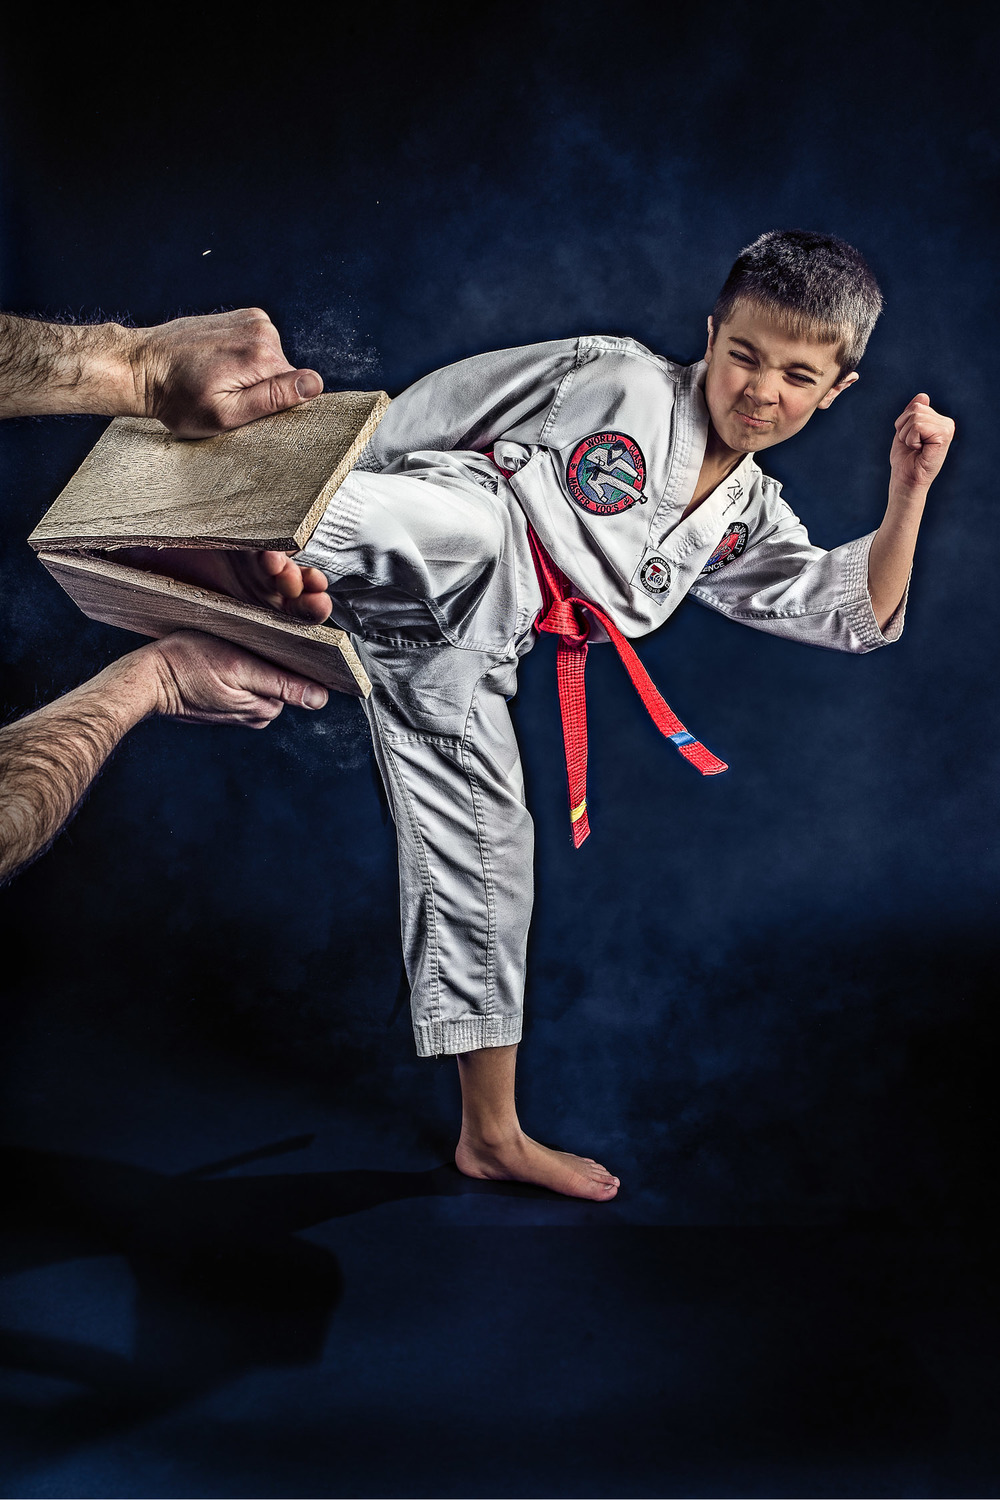 Taekwondo boy breaking a board with his foot